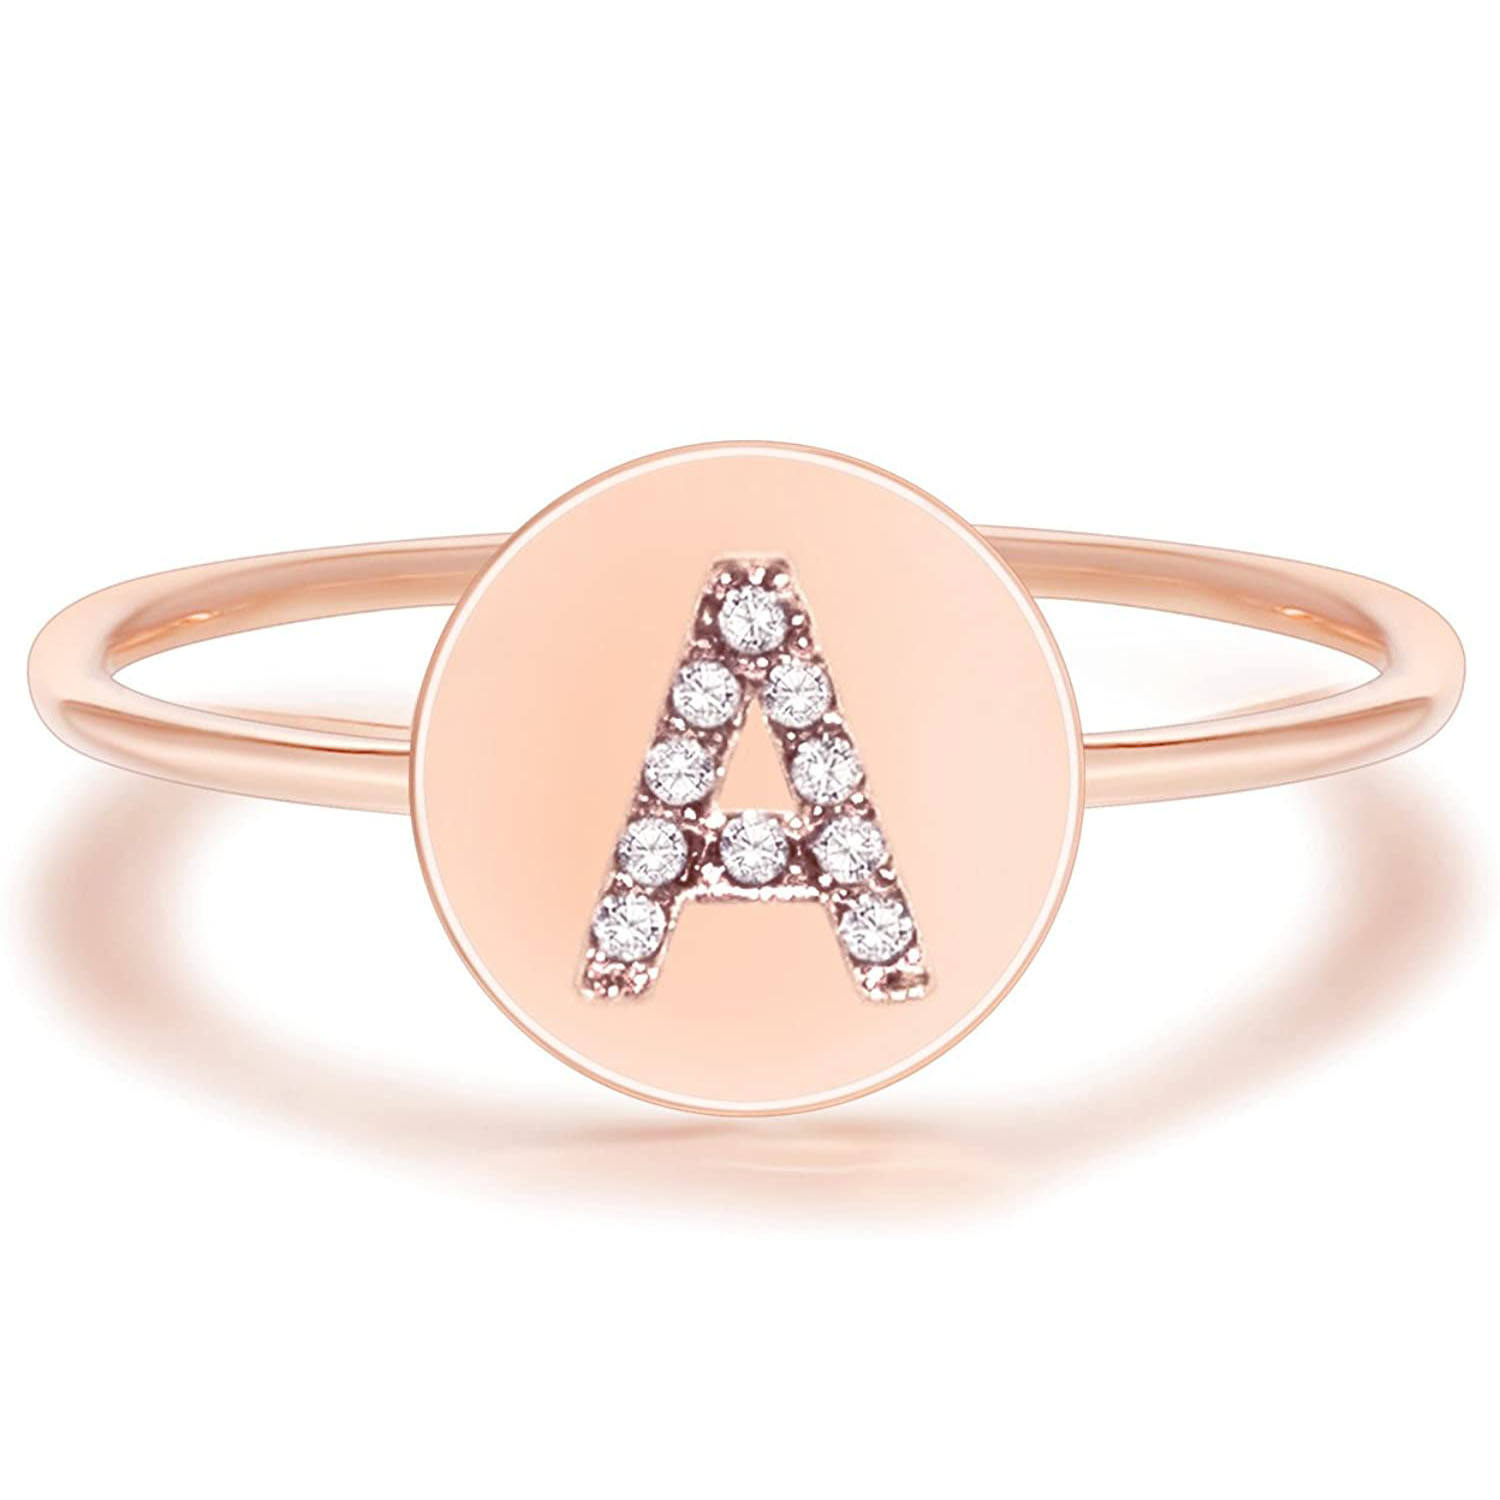 Stainless Steel Ring Wholesale 26 Alphabet Jewelry Heart Rose Gold Plated Custom Cuff Stacking Stacking Stainless Steel Initial Letter Ring Women